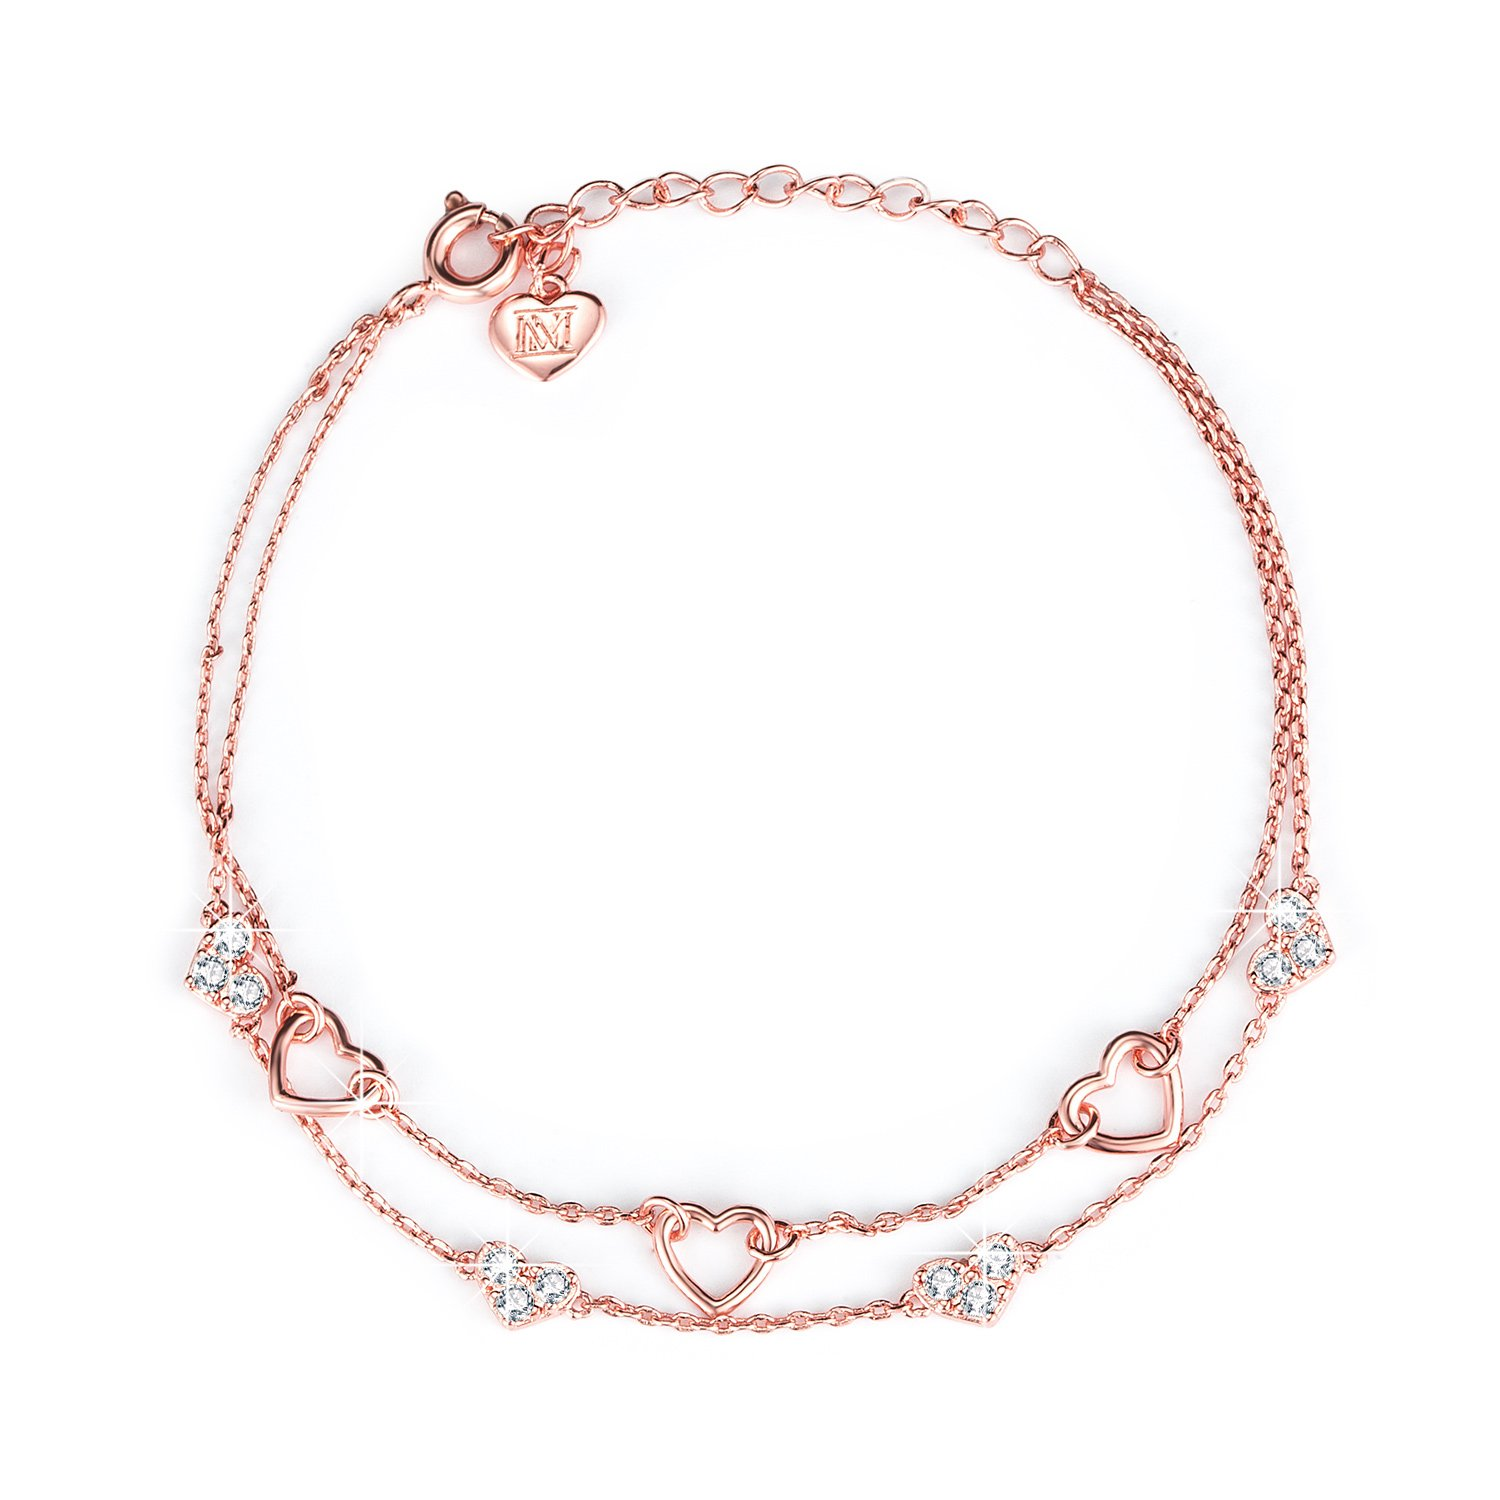 NINAMAID Eternity Love Heart Shaped Bracelet with Cubic Zirconia Gold Plated Copper Women Jewelry (Rose Gold)